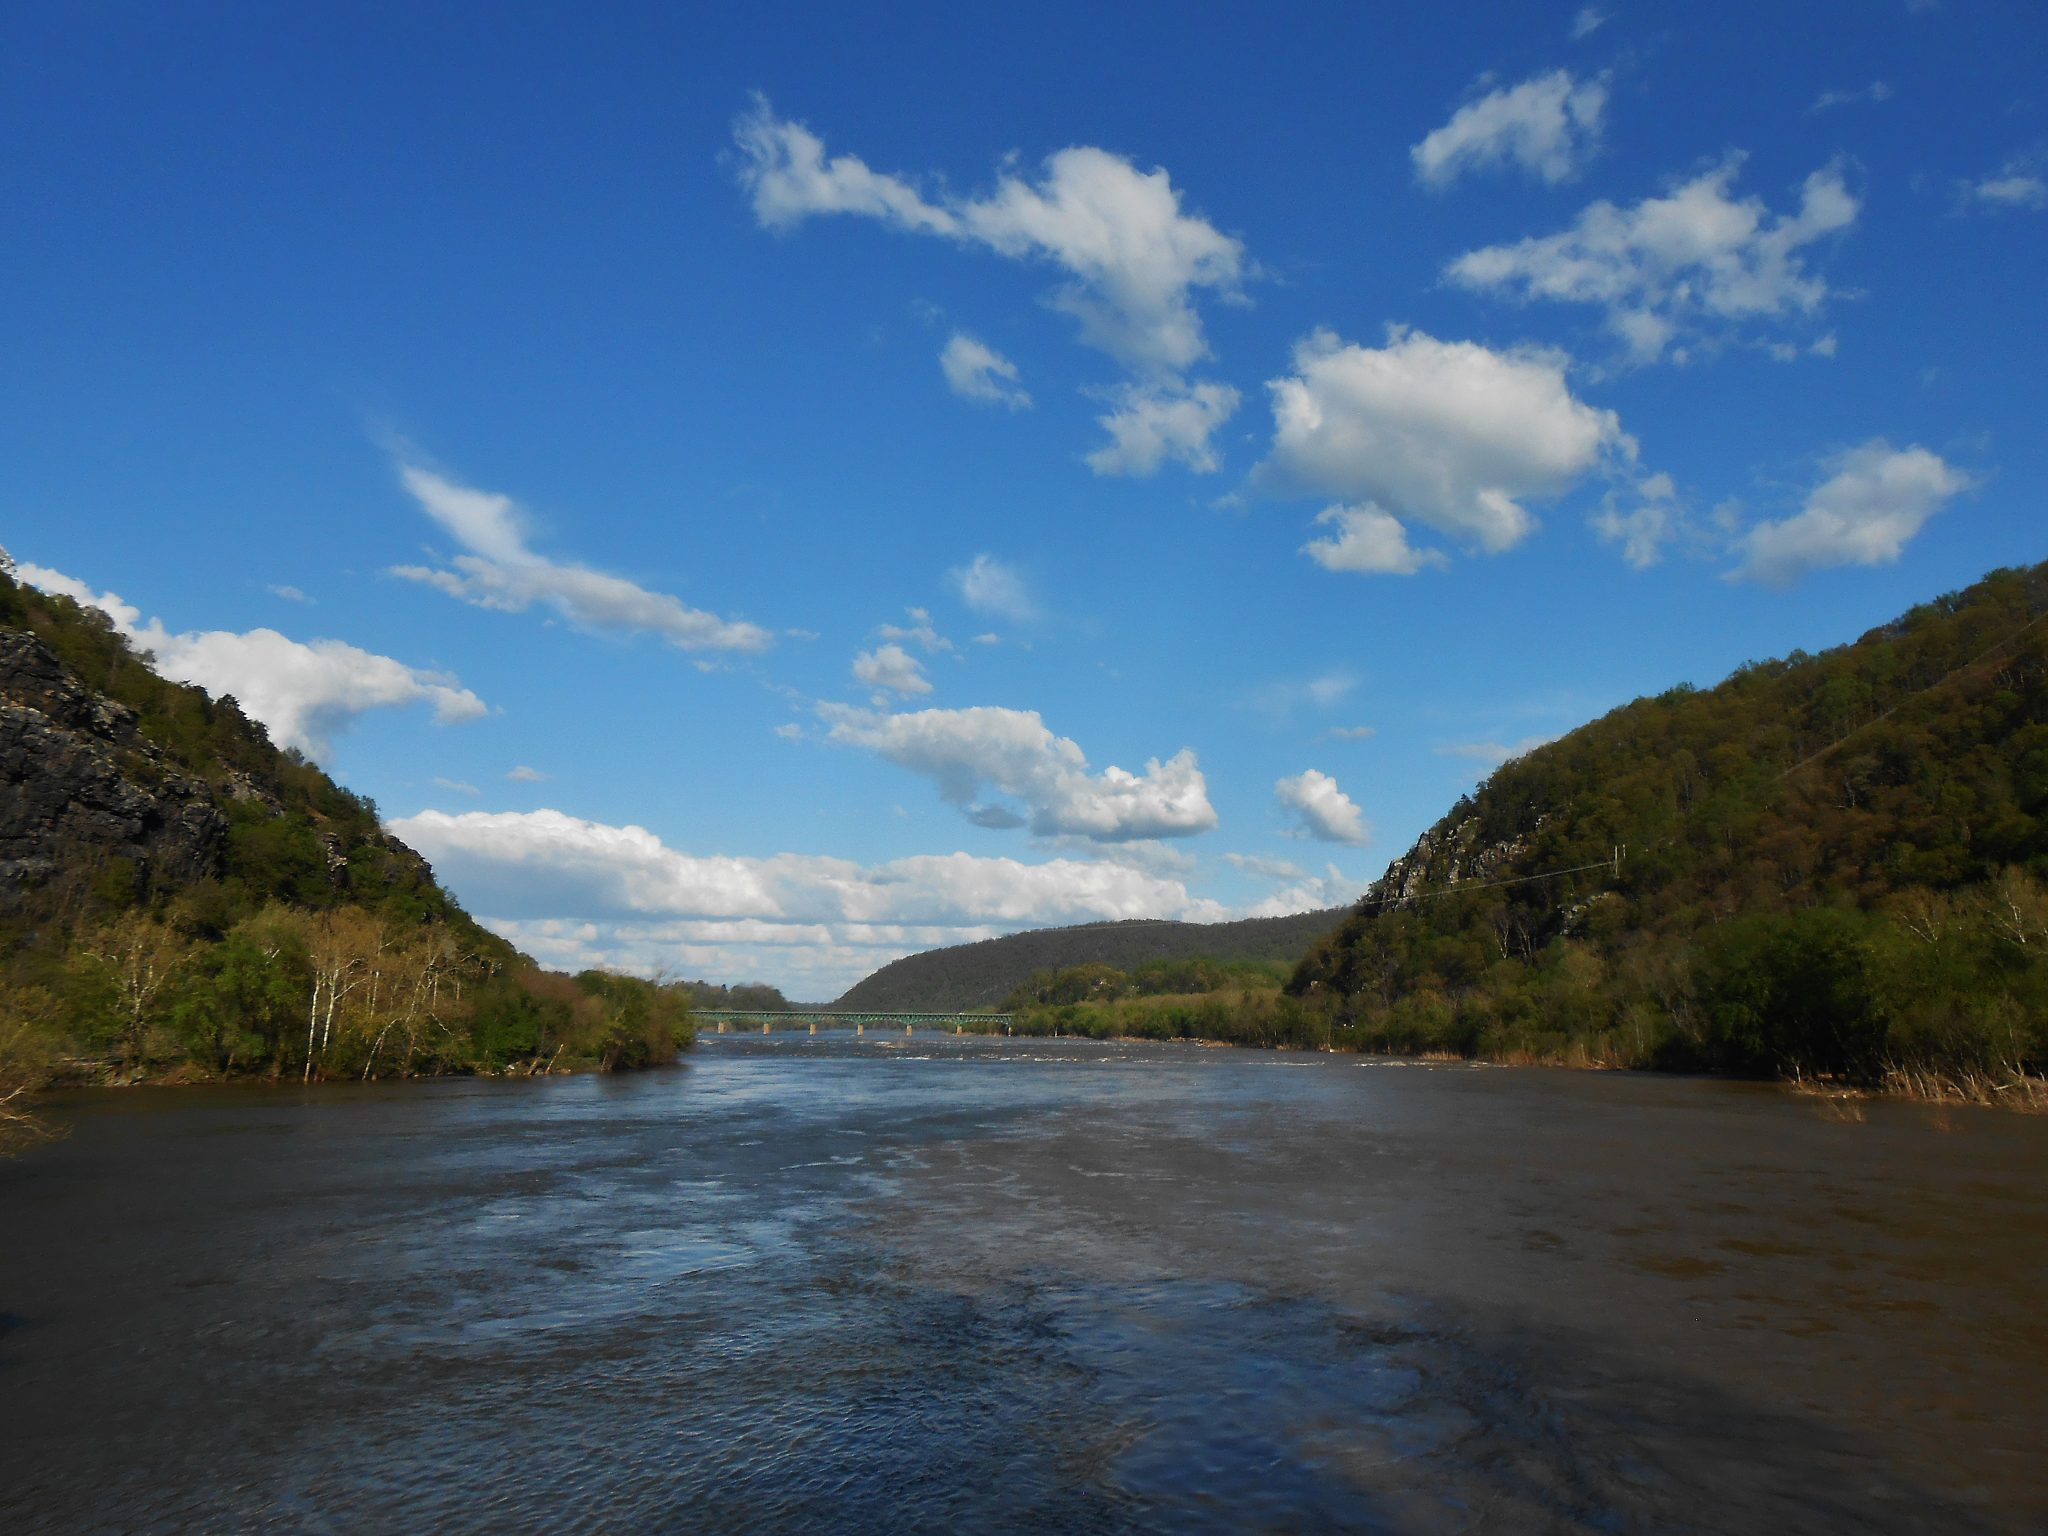 Confluence of the Shenadoah and Potomac Rivers at Harpers Ferry